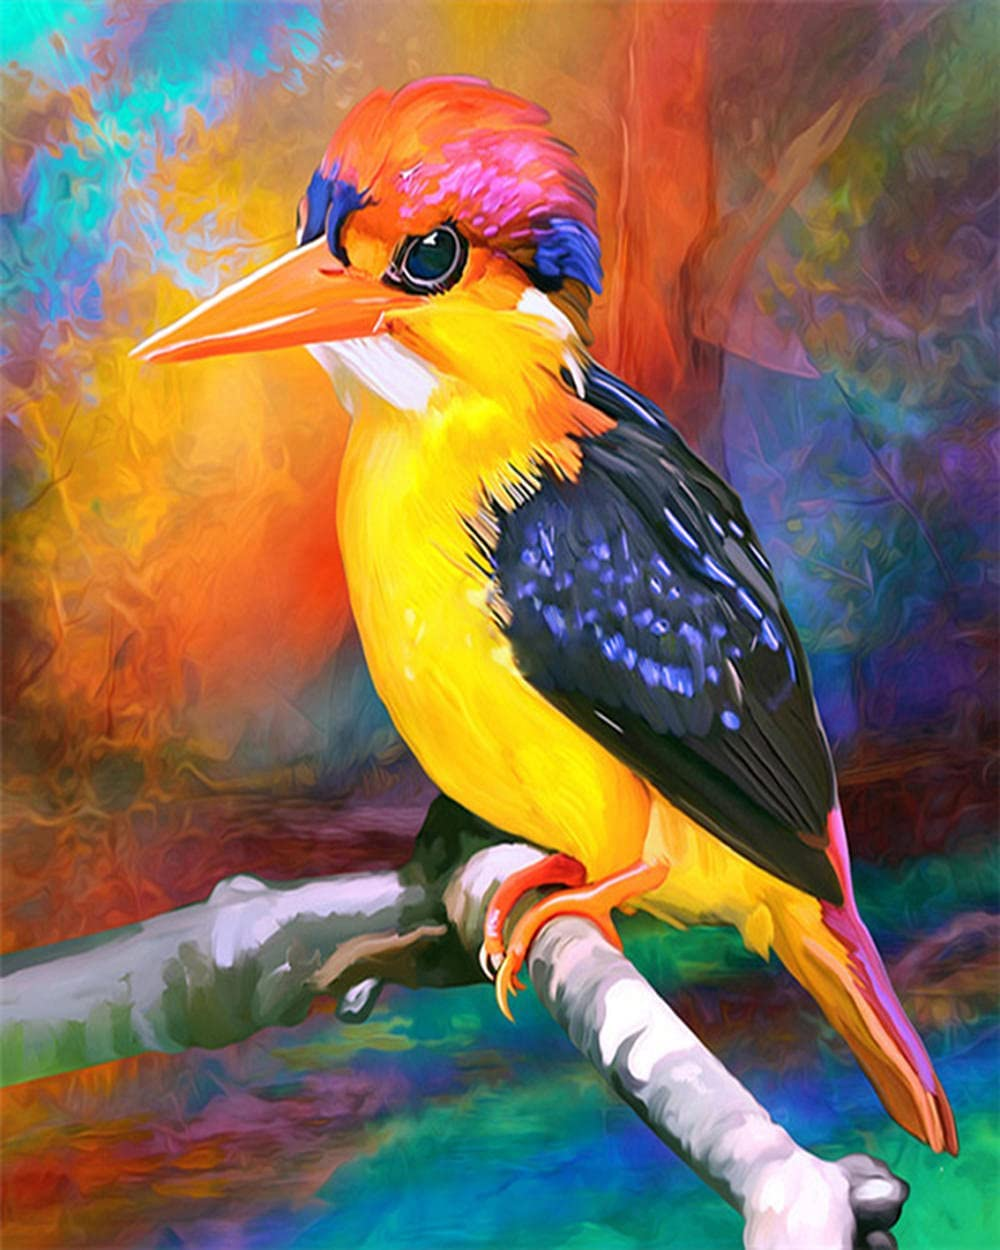 Price reduction HRKDHBS DIY Oil Paint by Number Bird Kit NEW before selling Animal Fr 40X50Cm with